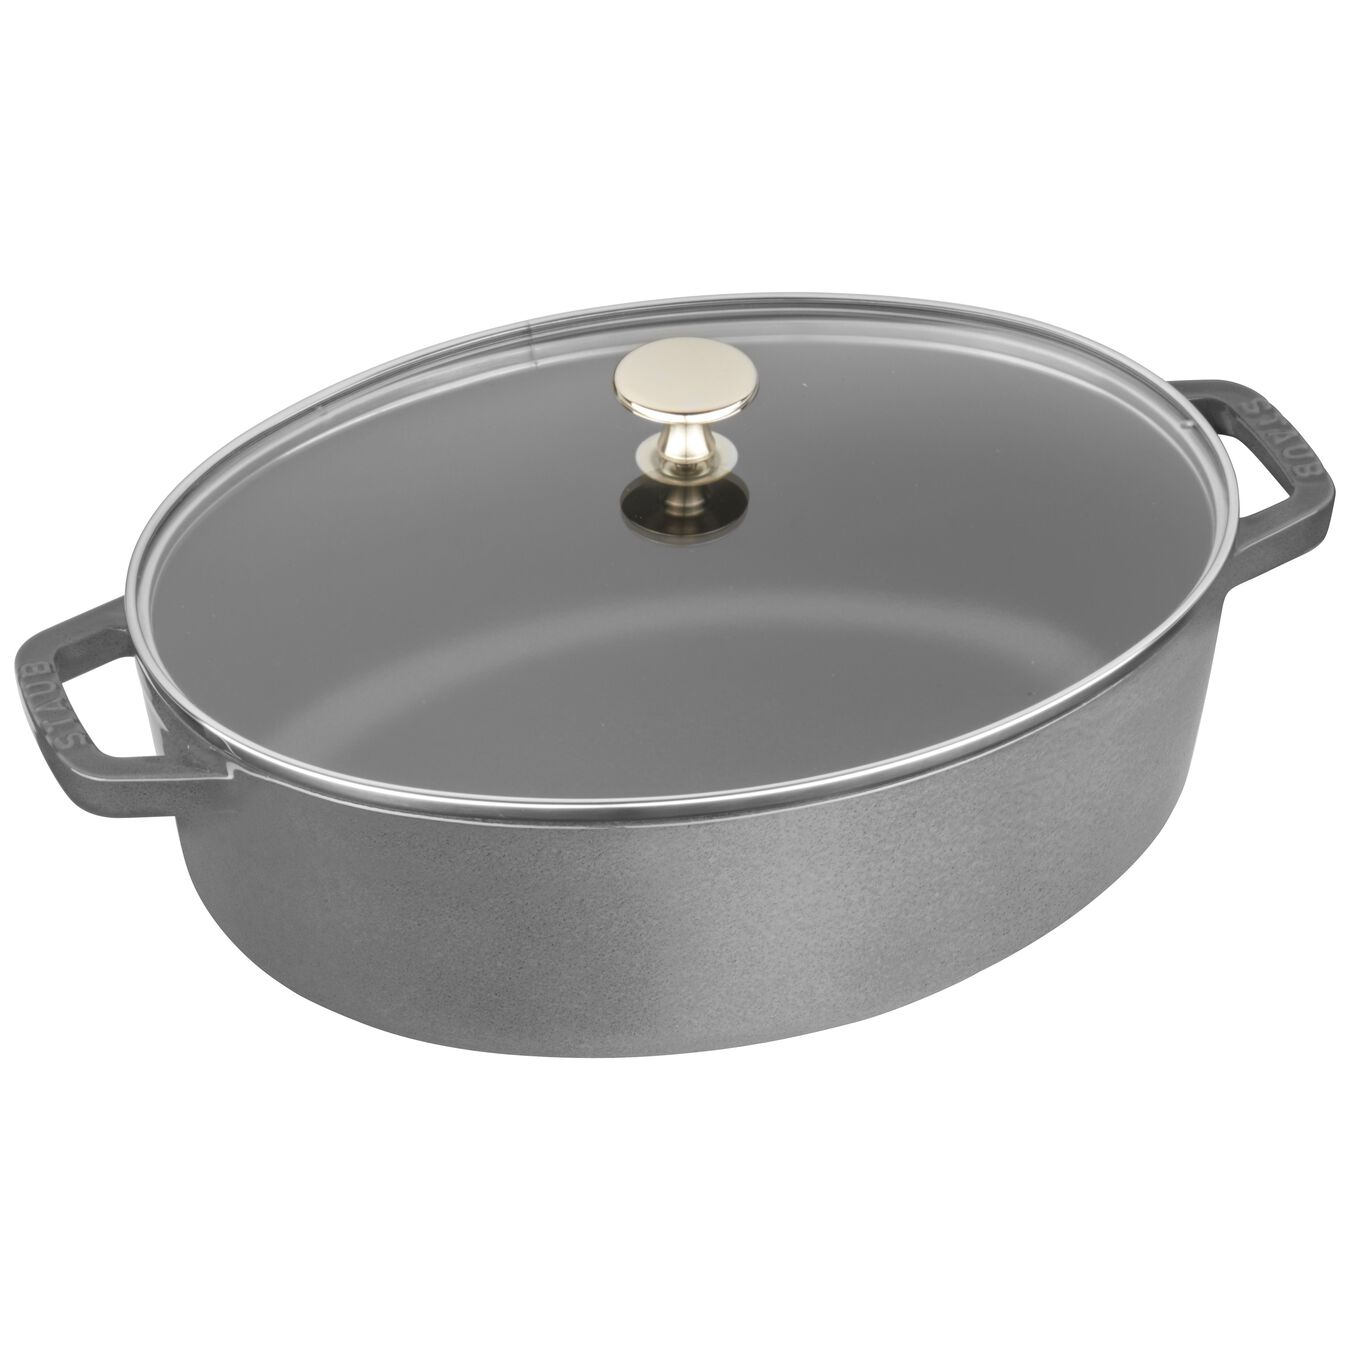 4.25-qt Shallow Wide Oval Cocotte with Glass Lid - Graphite Grey,,large 1